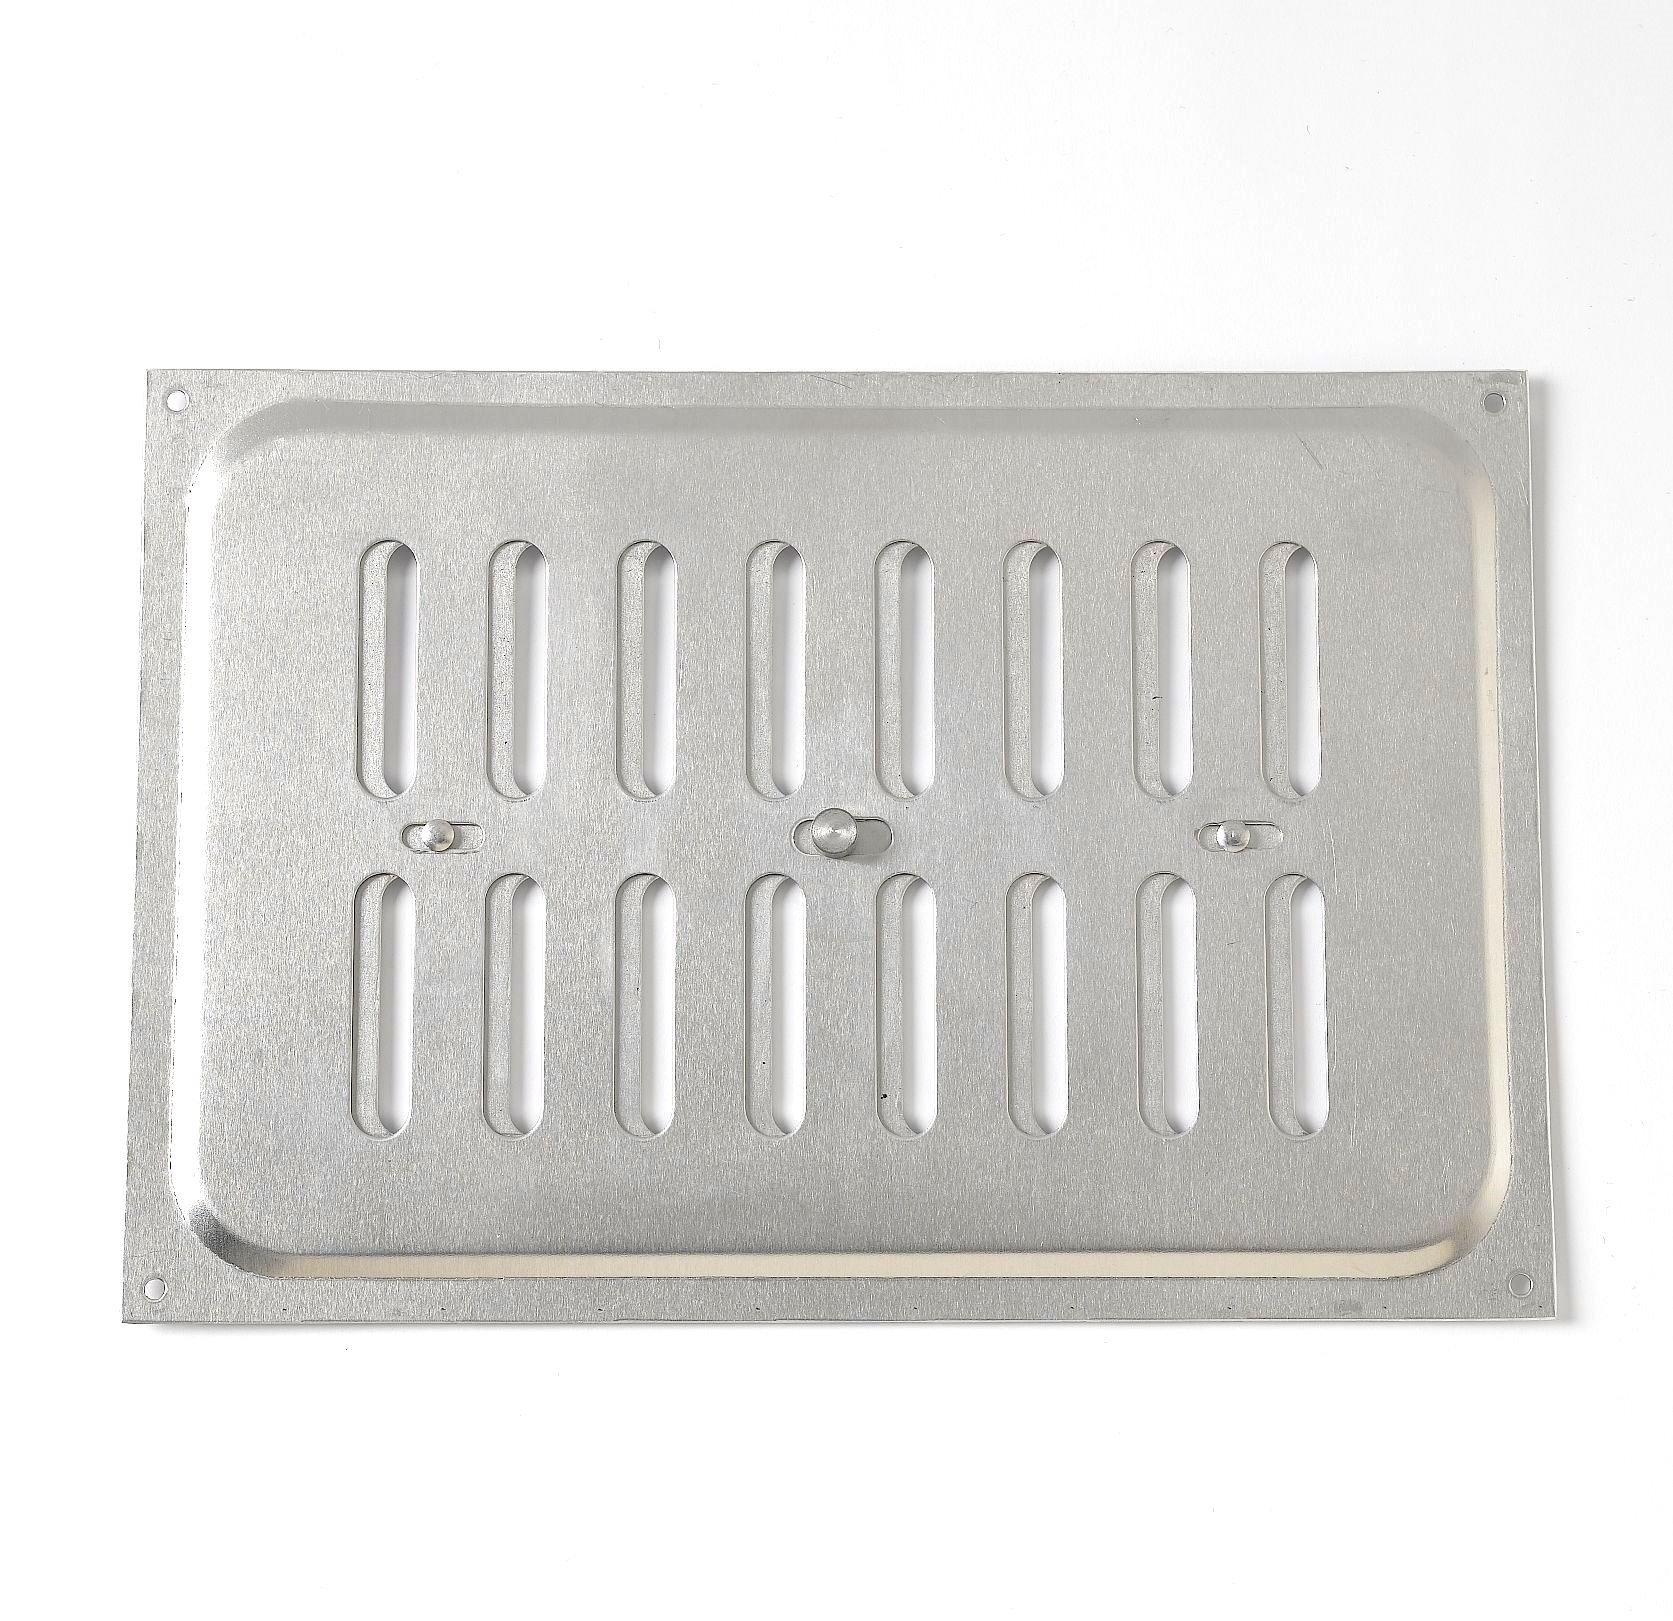 Bulk Hardware BH05804 Adjustable Hit and Miss Air Vent Grille, 240 x 165 mm (9.45 x 6.5 inches) - Aluminium